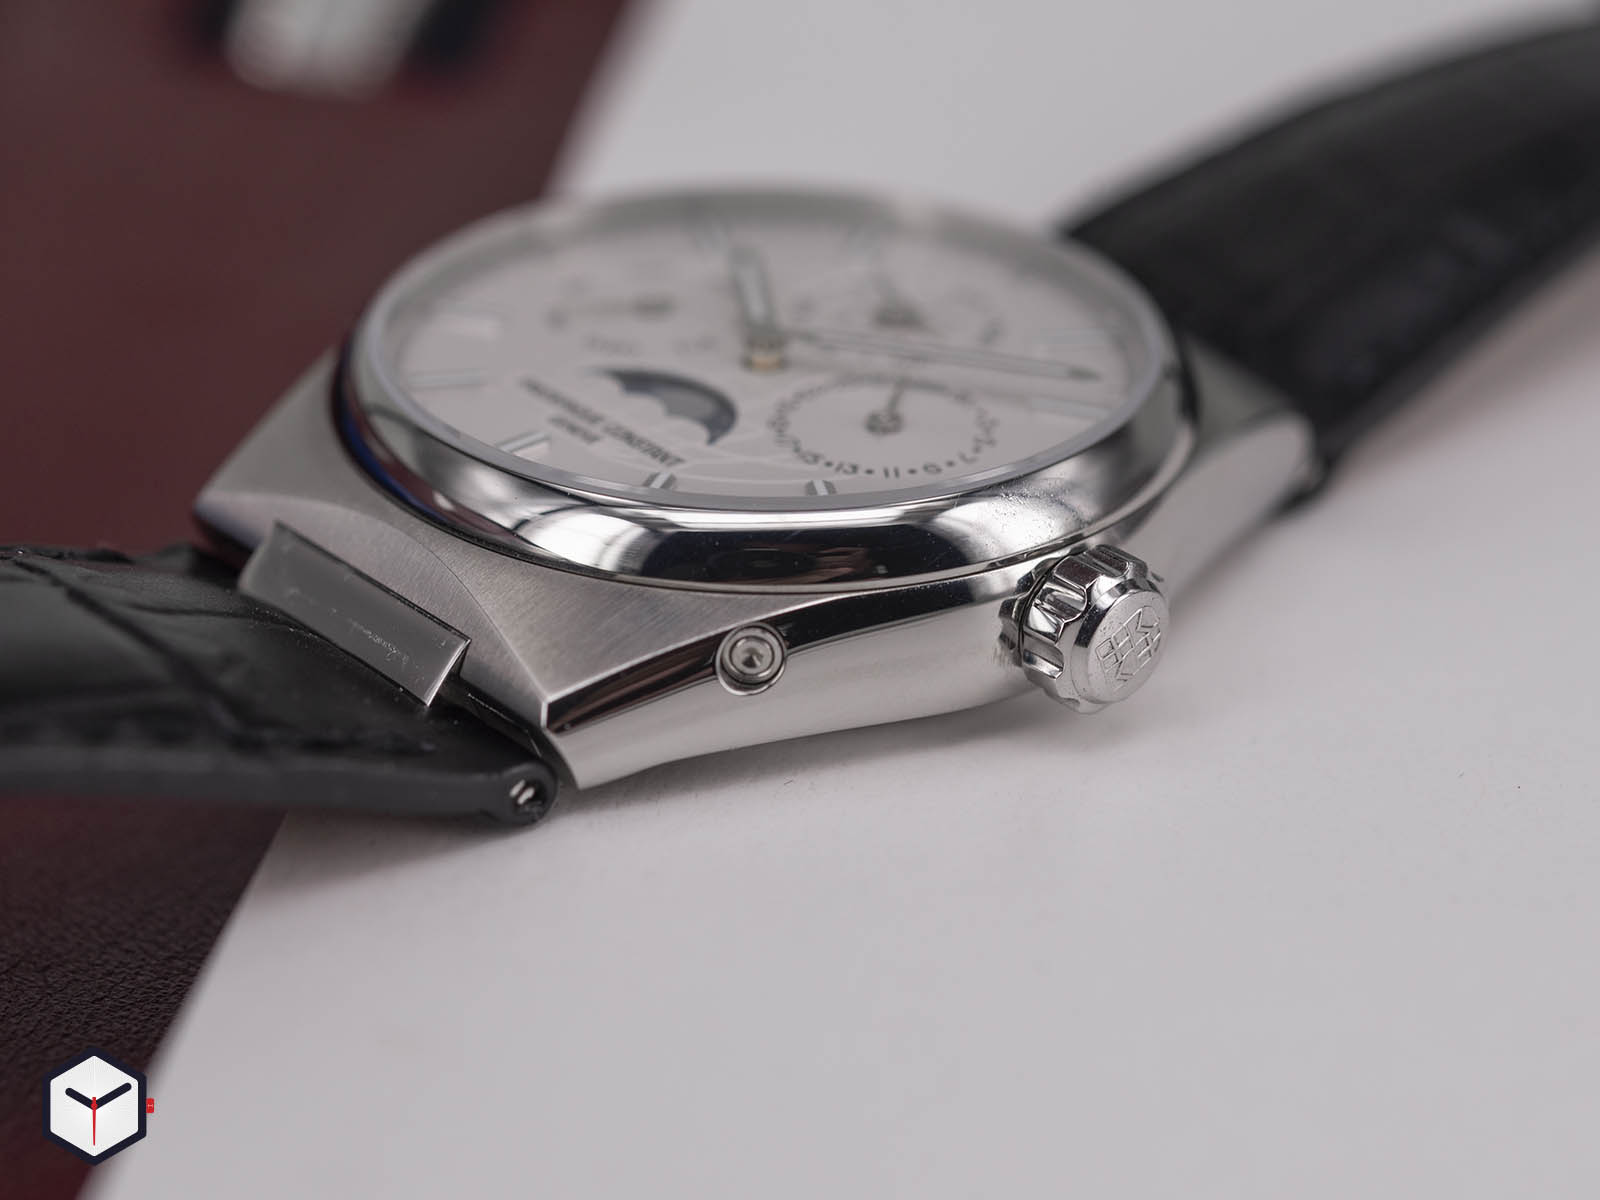 fc-775s4nh6-frederique-constant-highlife-perpetual-calendar-manufacture-5.jpg